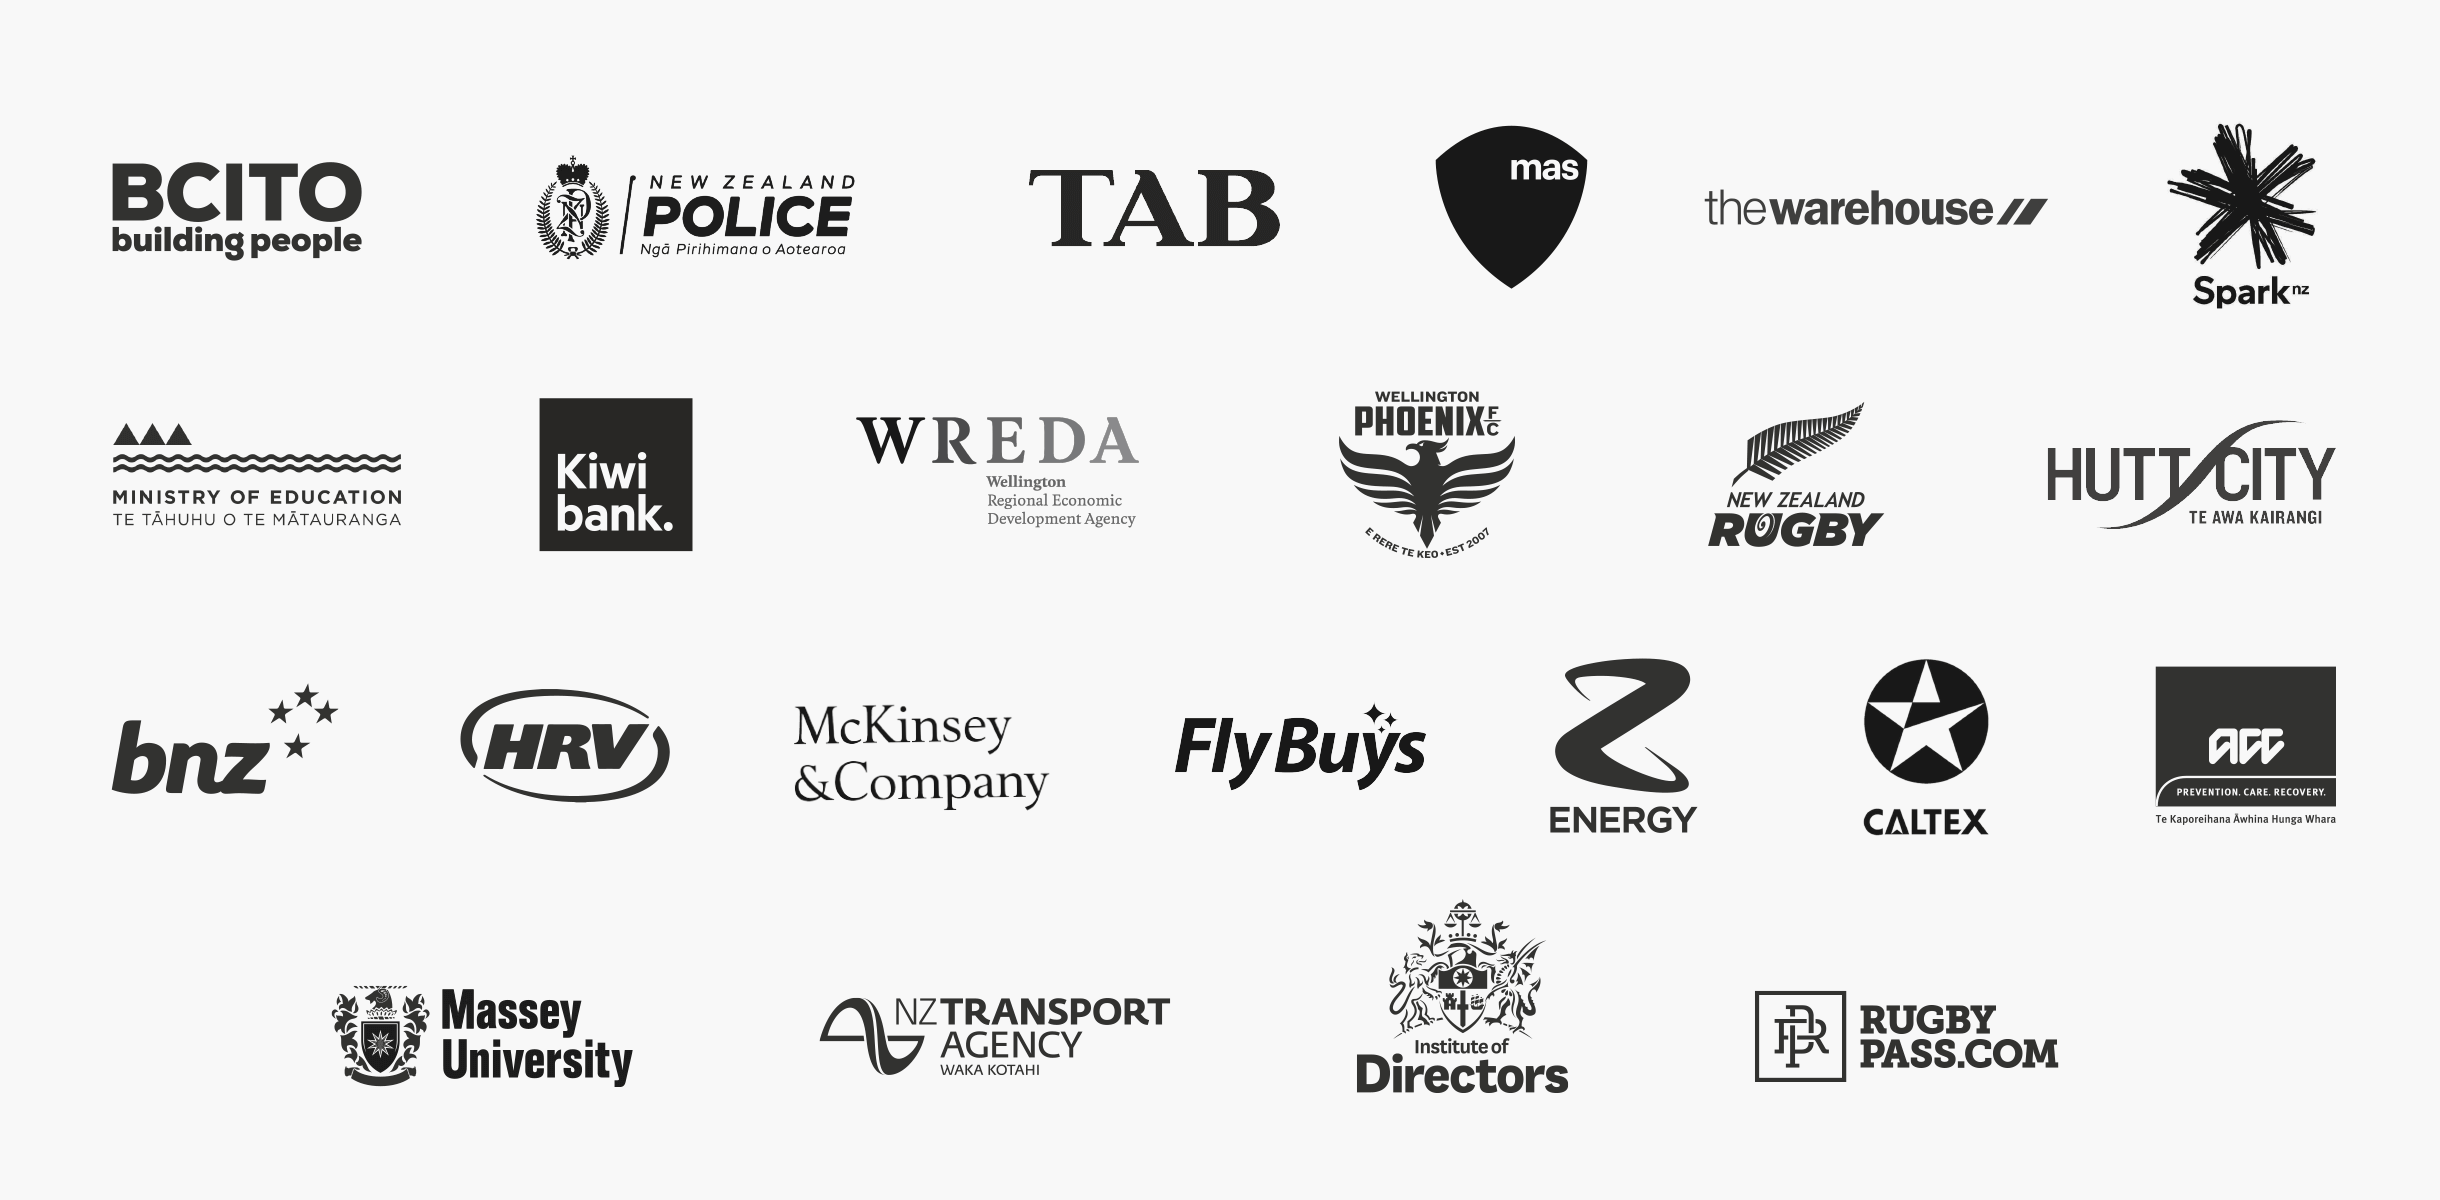 Services_logos3.png